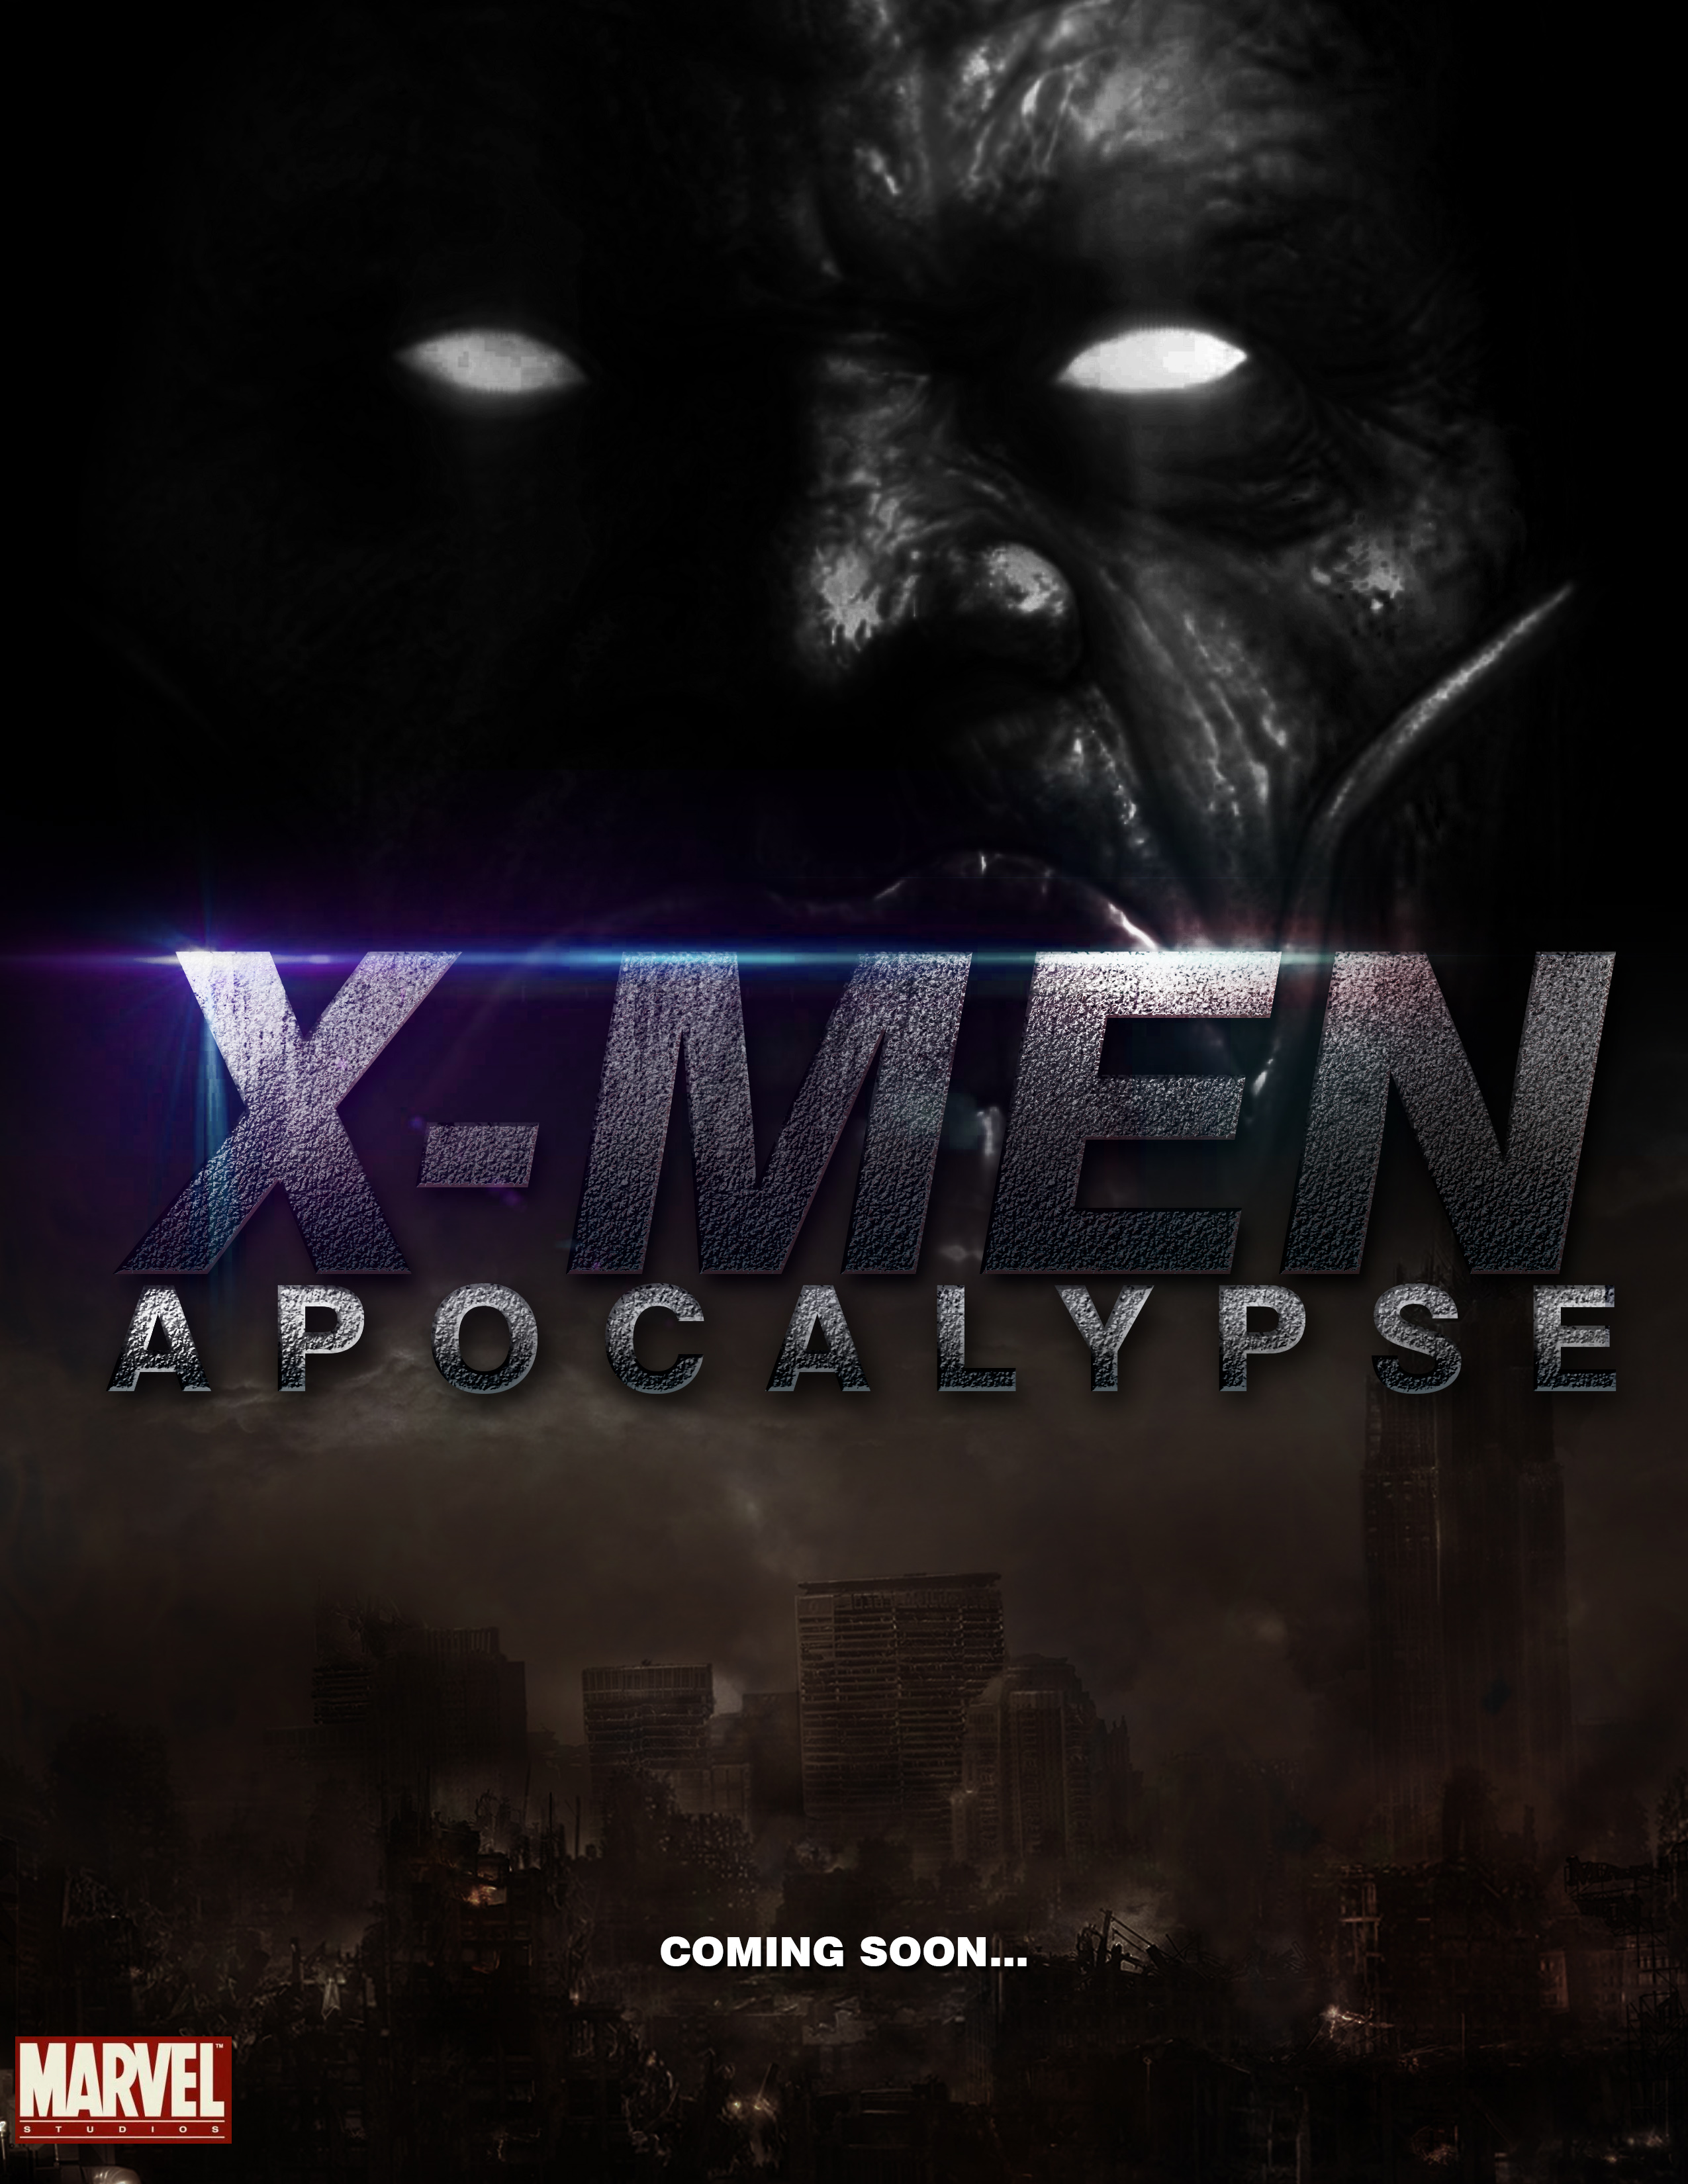 Men Apocalypse wallpapers High Resolution and Quality Download 2550x3300